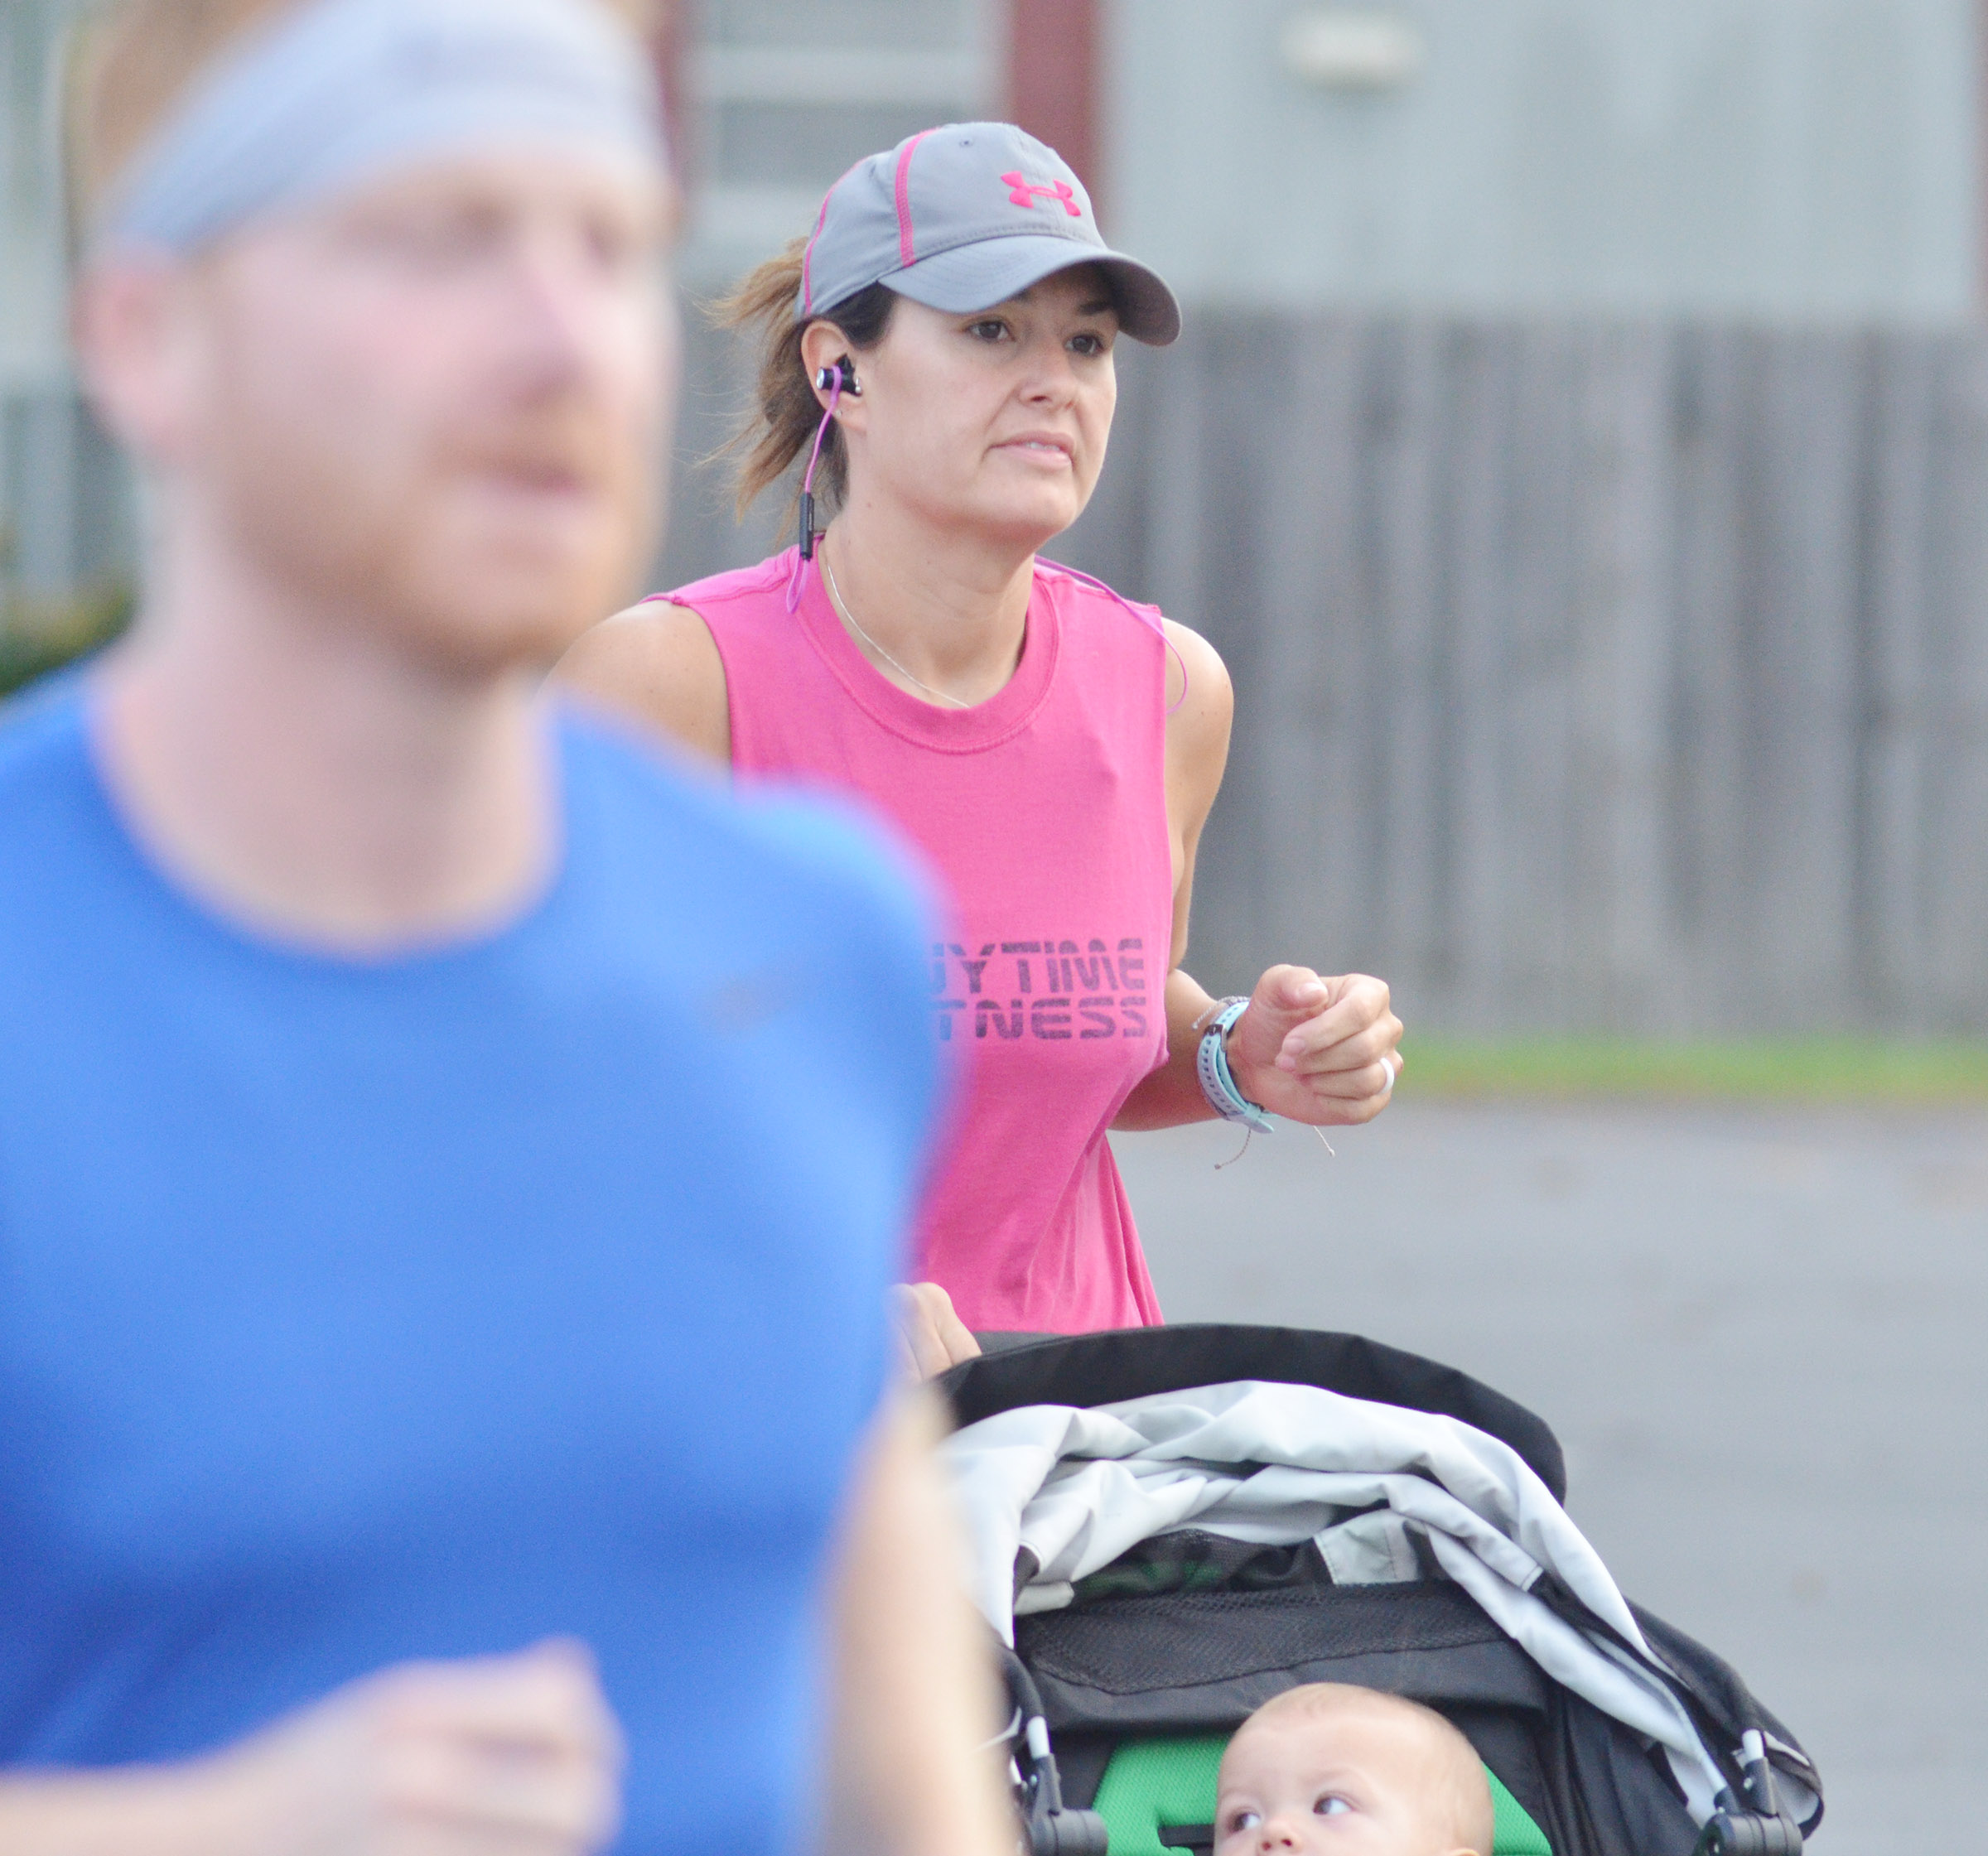 Campbellsville Elementary School exceptional child educator Amber Johnson begins the 5K race.